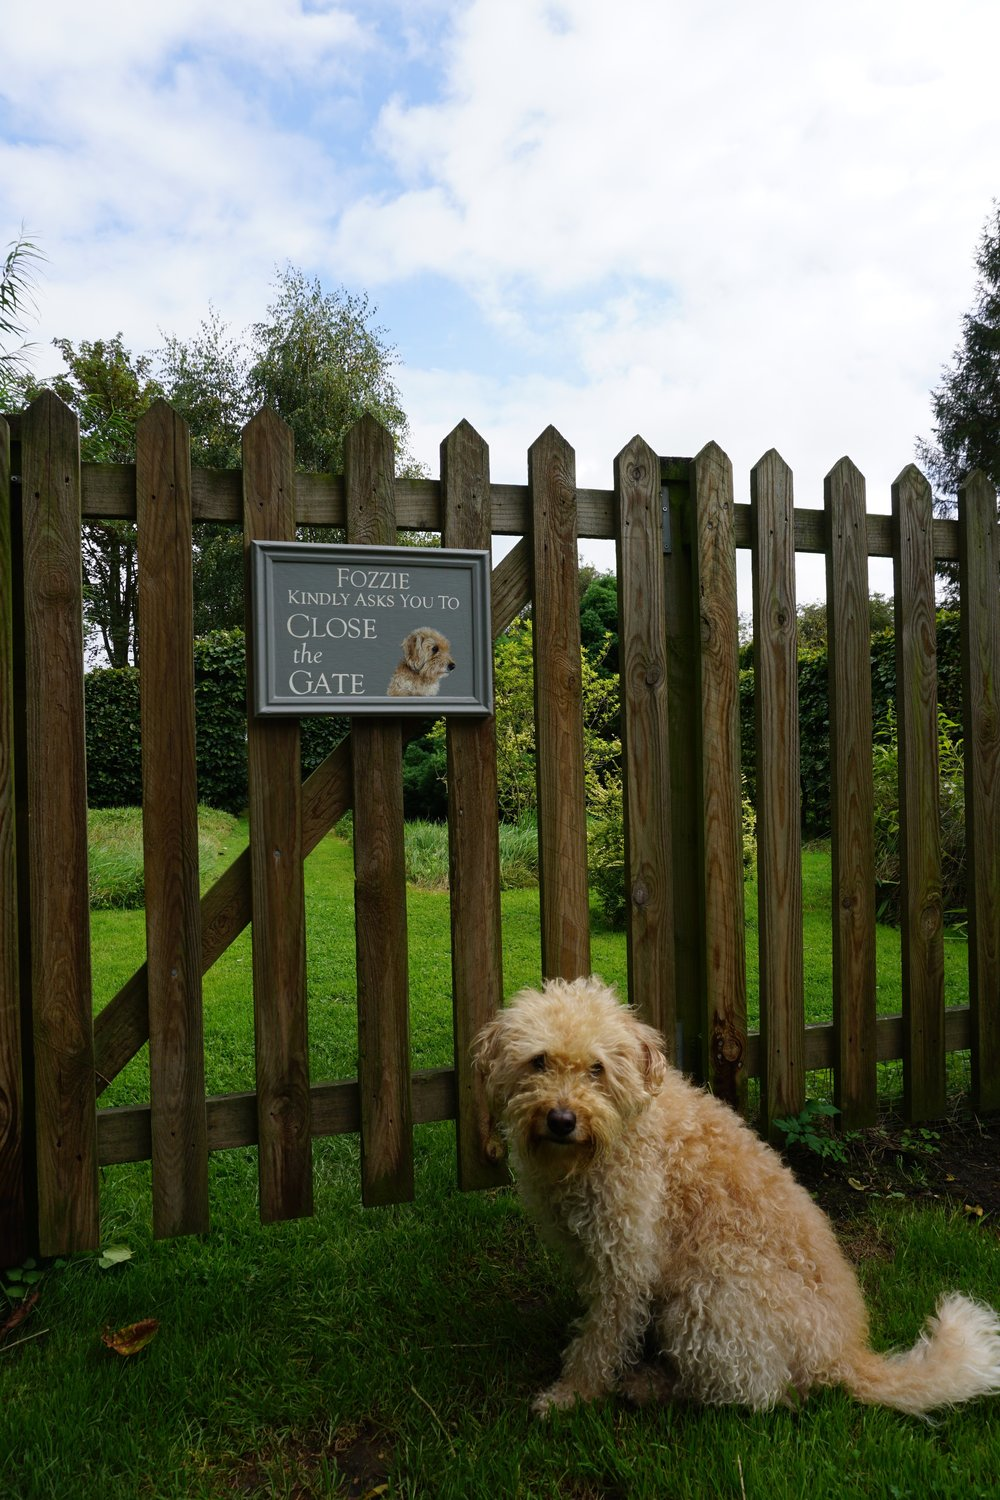 Fozzie's new garden gate sign!